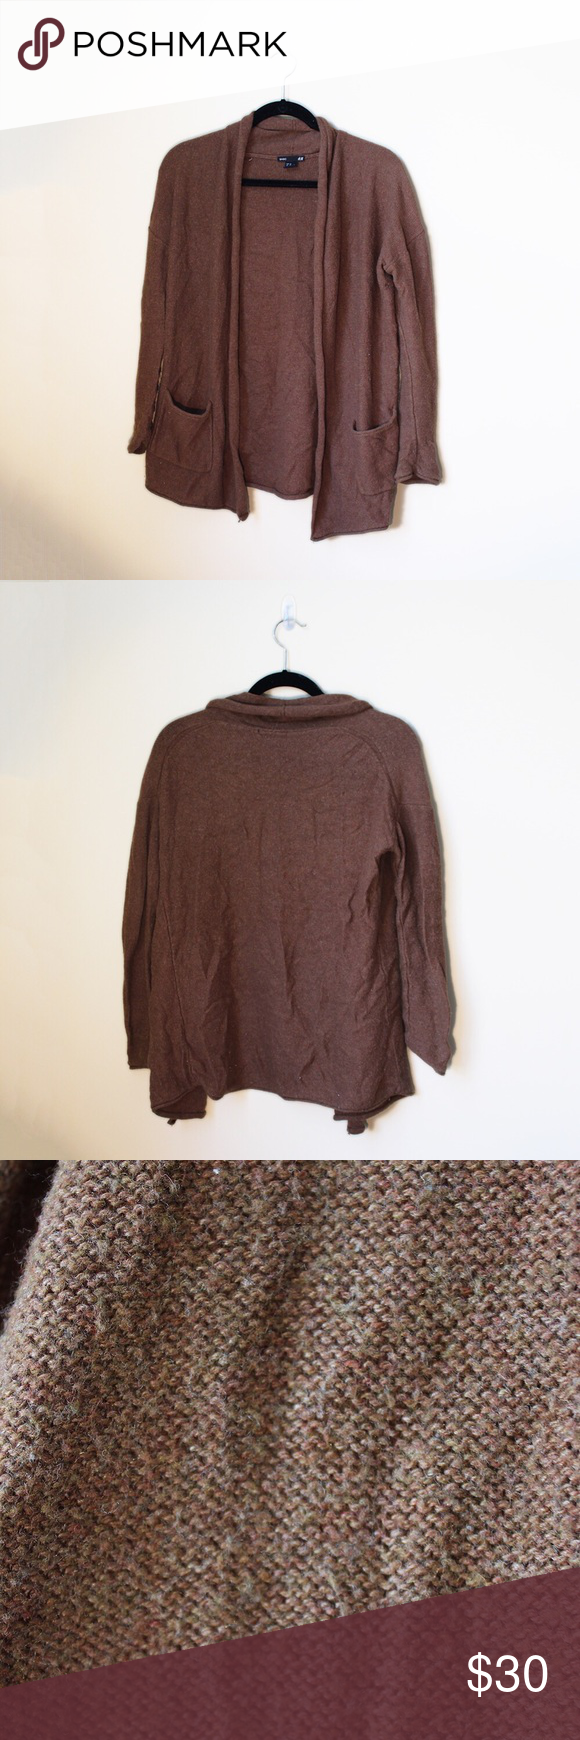 Oversized Brown Cardigan A warm, cozy long cardigan perfect for ...